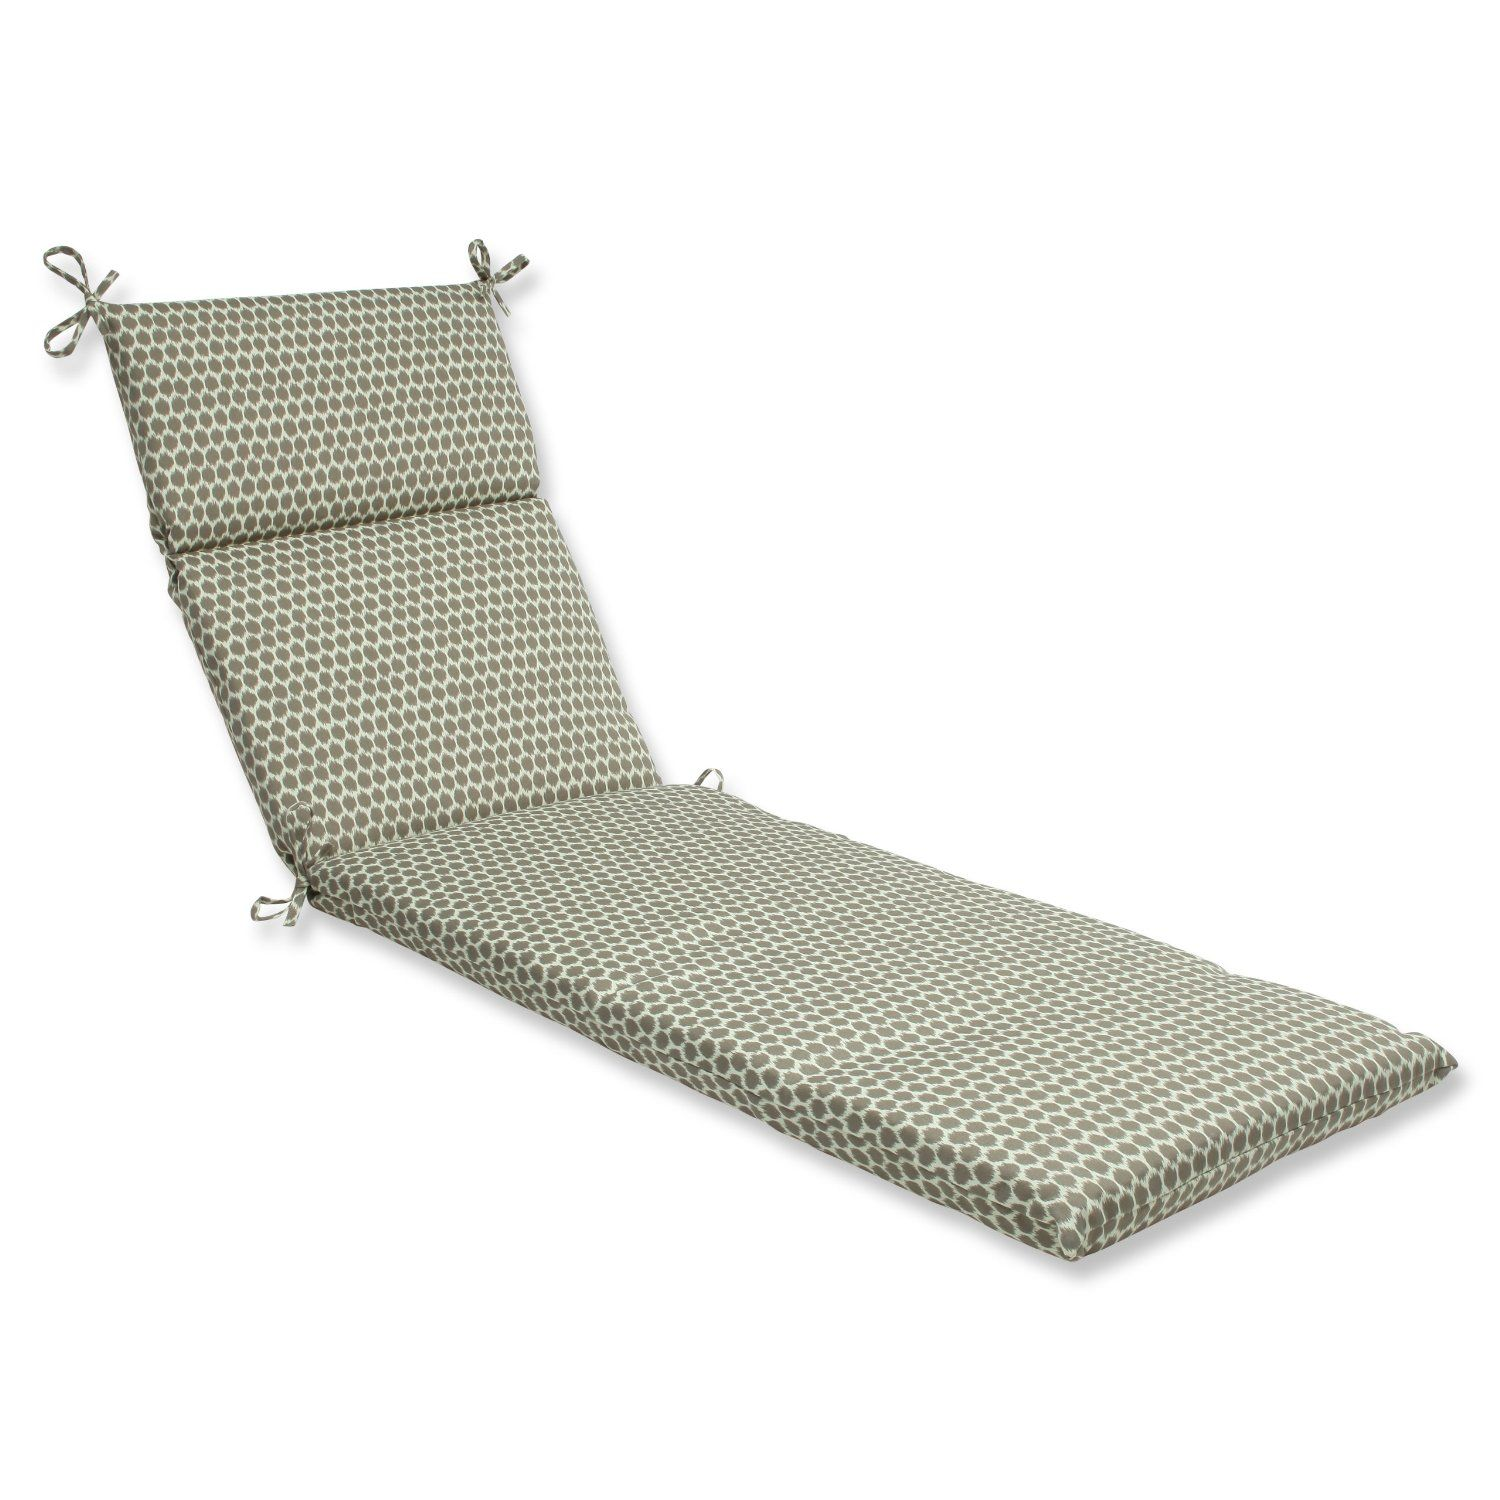 Pillow perfect outdoor seeing spots sterling for Chaise lounge cushion outdoor